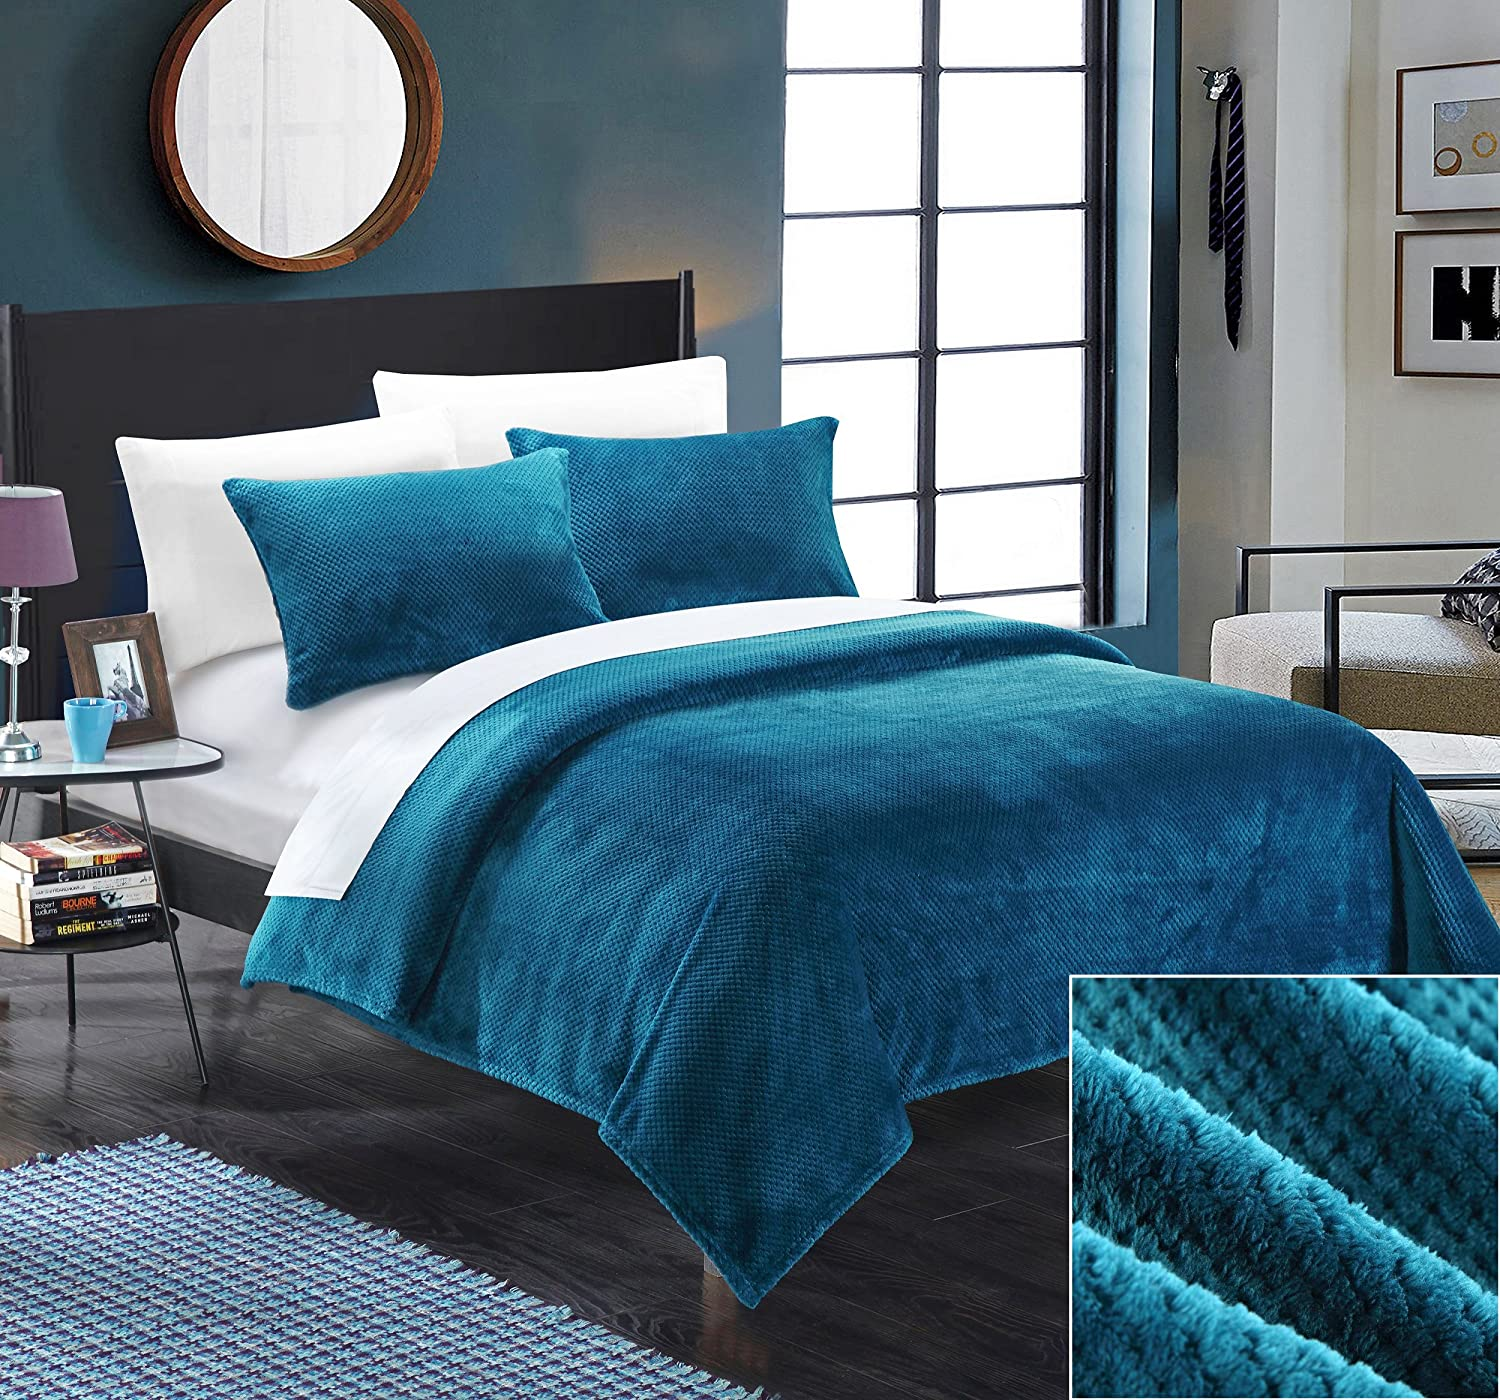 Chic Home SB1685-AN 3 Piece Luxembourg Ultra Plush Micro Mink Waffle Textured Blanket and Shams Set, Full/Queen, Teal